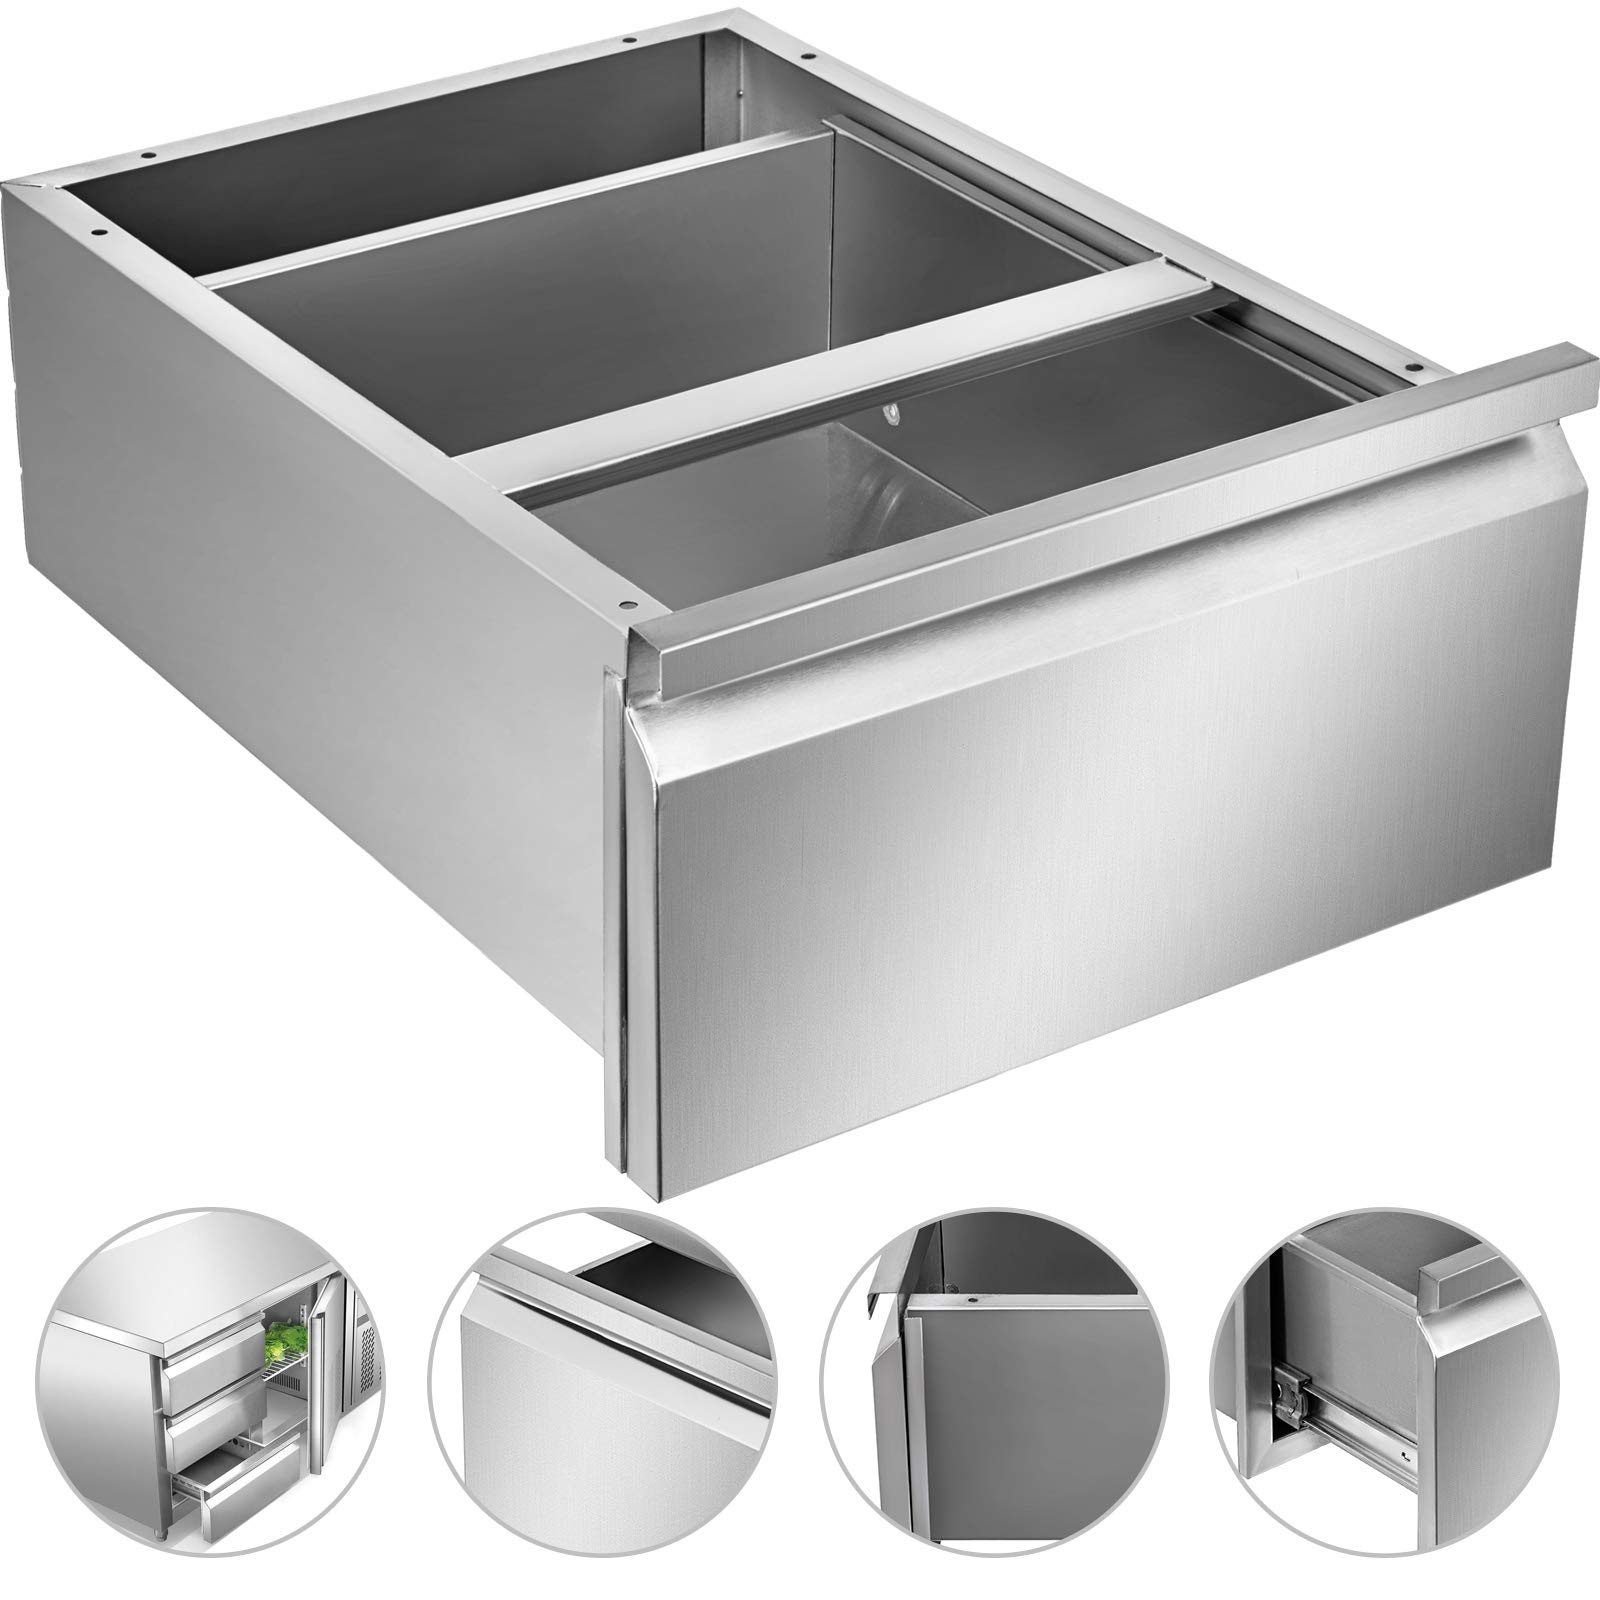 Mophorn Outdoor Kitchen Drawer Stainless Steel BBQ Storage with Chrome Handle Flush Mount Sliver (15.7 x 20 x 8 Inch, Single Worktable Drawer)